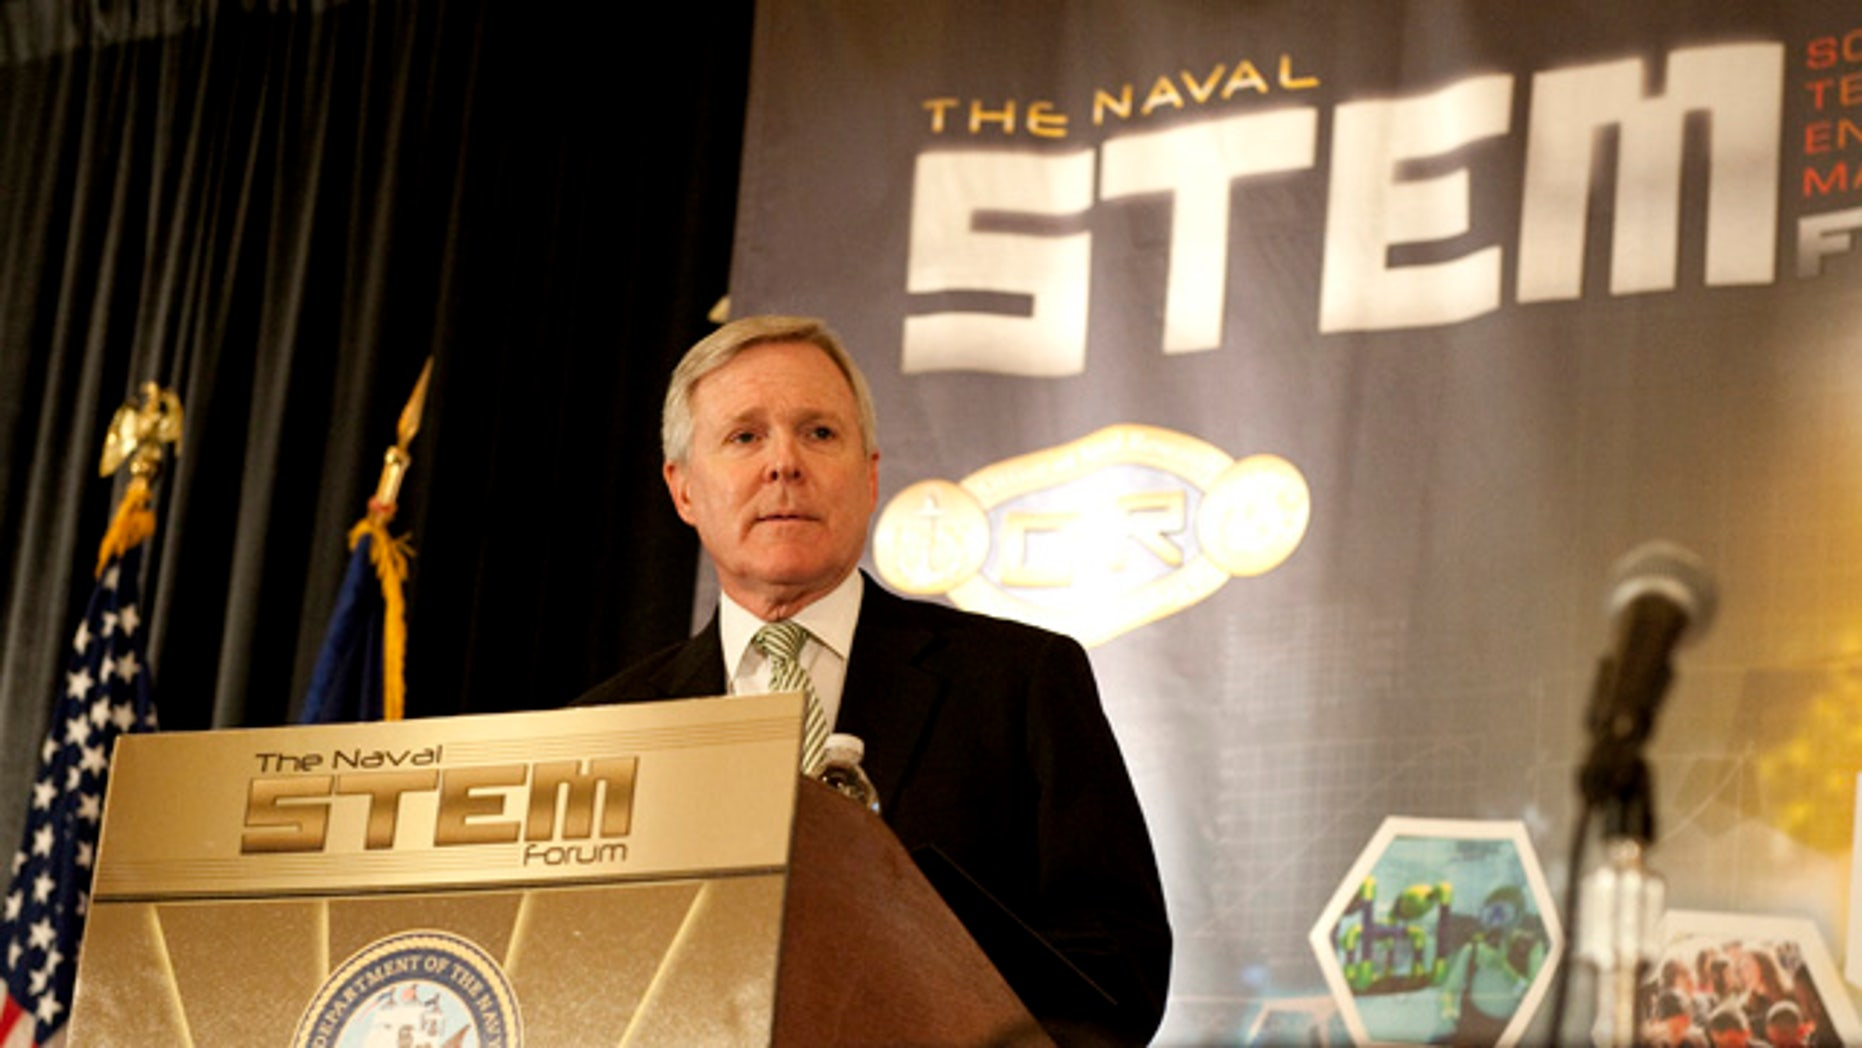 Jun. 15, 2011: Secretary of the Navy Ray Mabus presents the Navy's science, technology, engineering and mathematics (STEM) strategy at the Naval STEM Forum, hosted by the Office of Naval Research in Alexandria, Va.